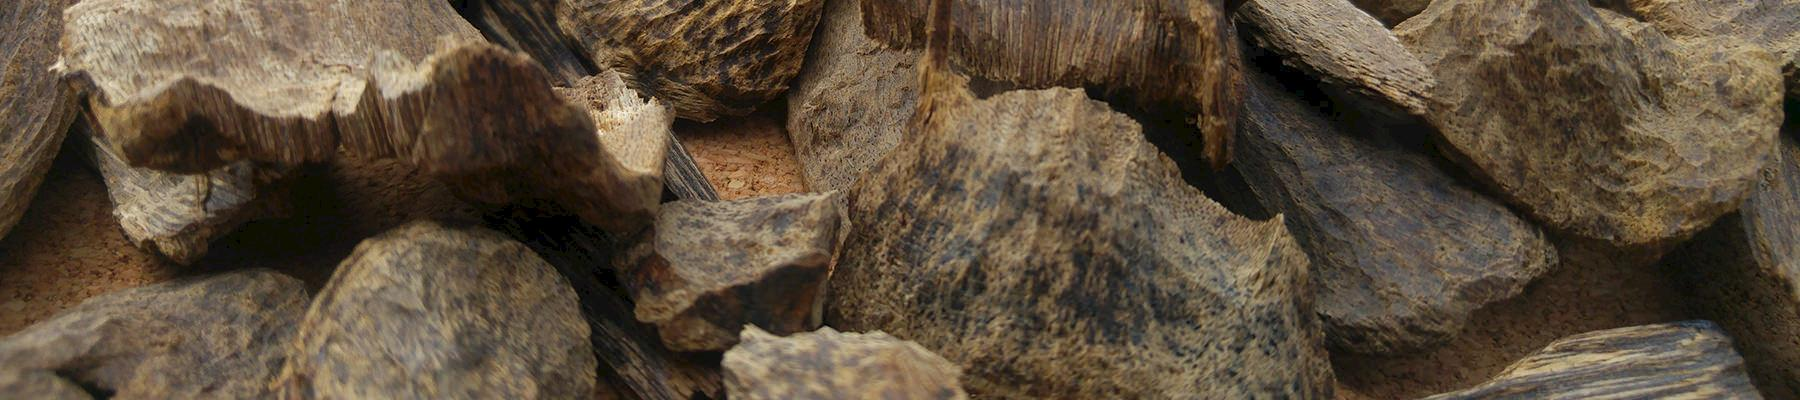 Pieces of agarwood ready for sale © Agarwood for Life / CC Generic 2.0